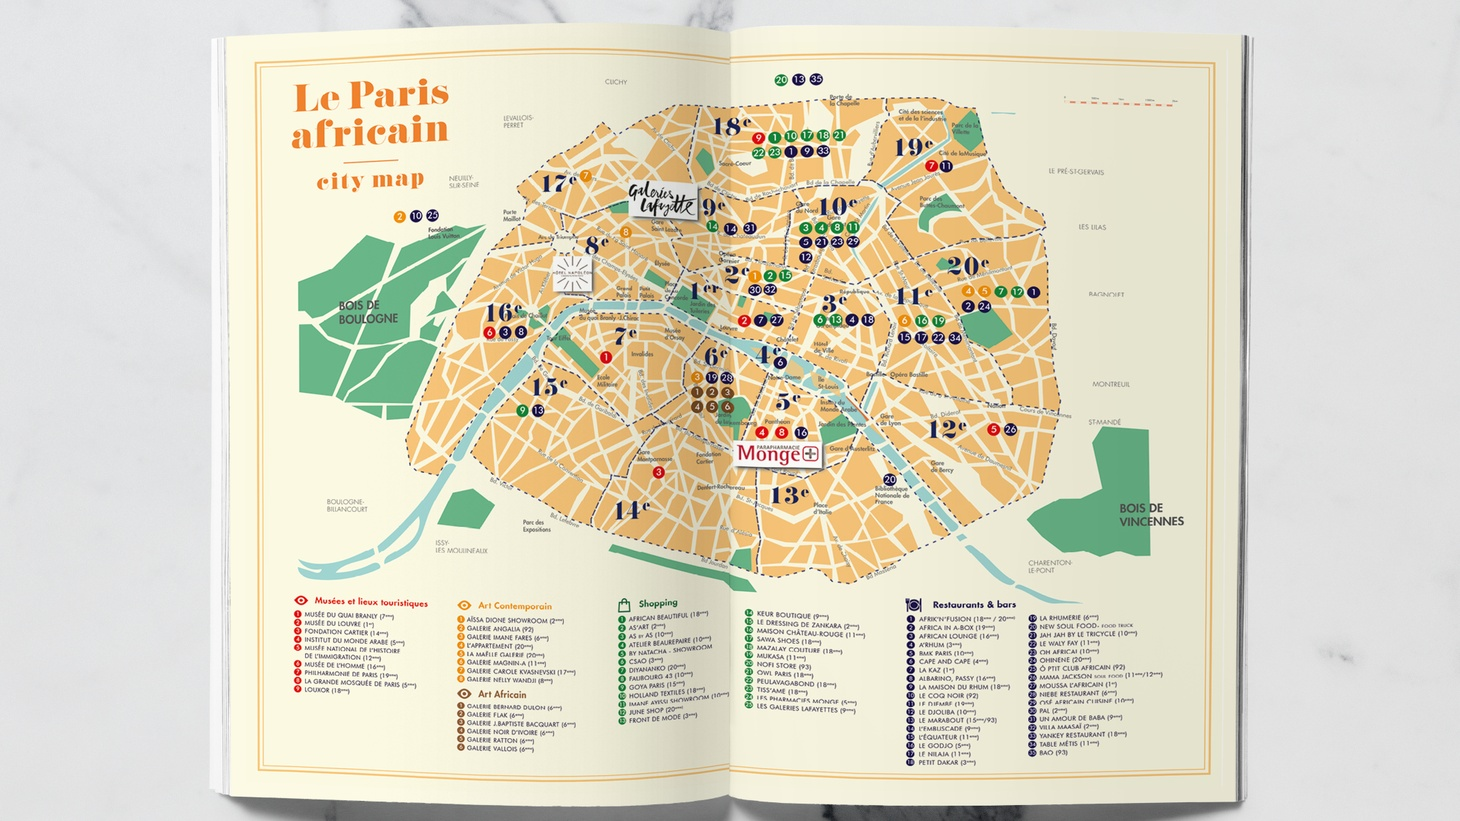 """Discovering African markets, fabric shops, art galleries, and nightlife is made easy with Jacqueline Ngo Mpii's pocket guide, """"Africa in Paris."""""""